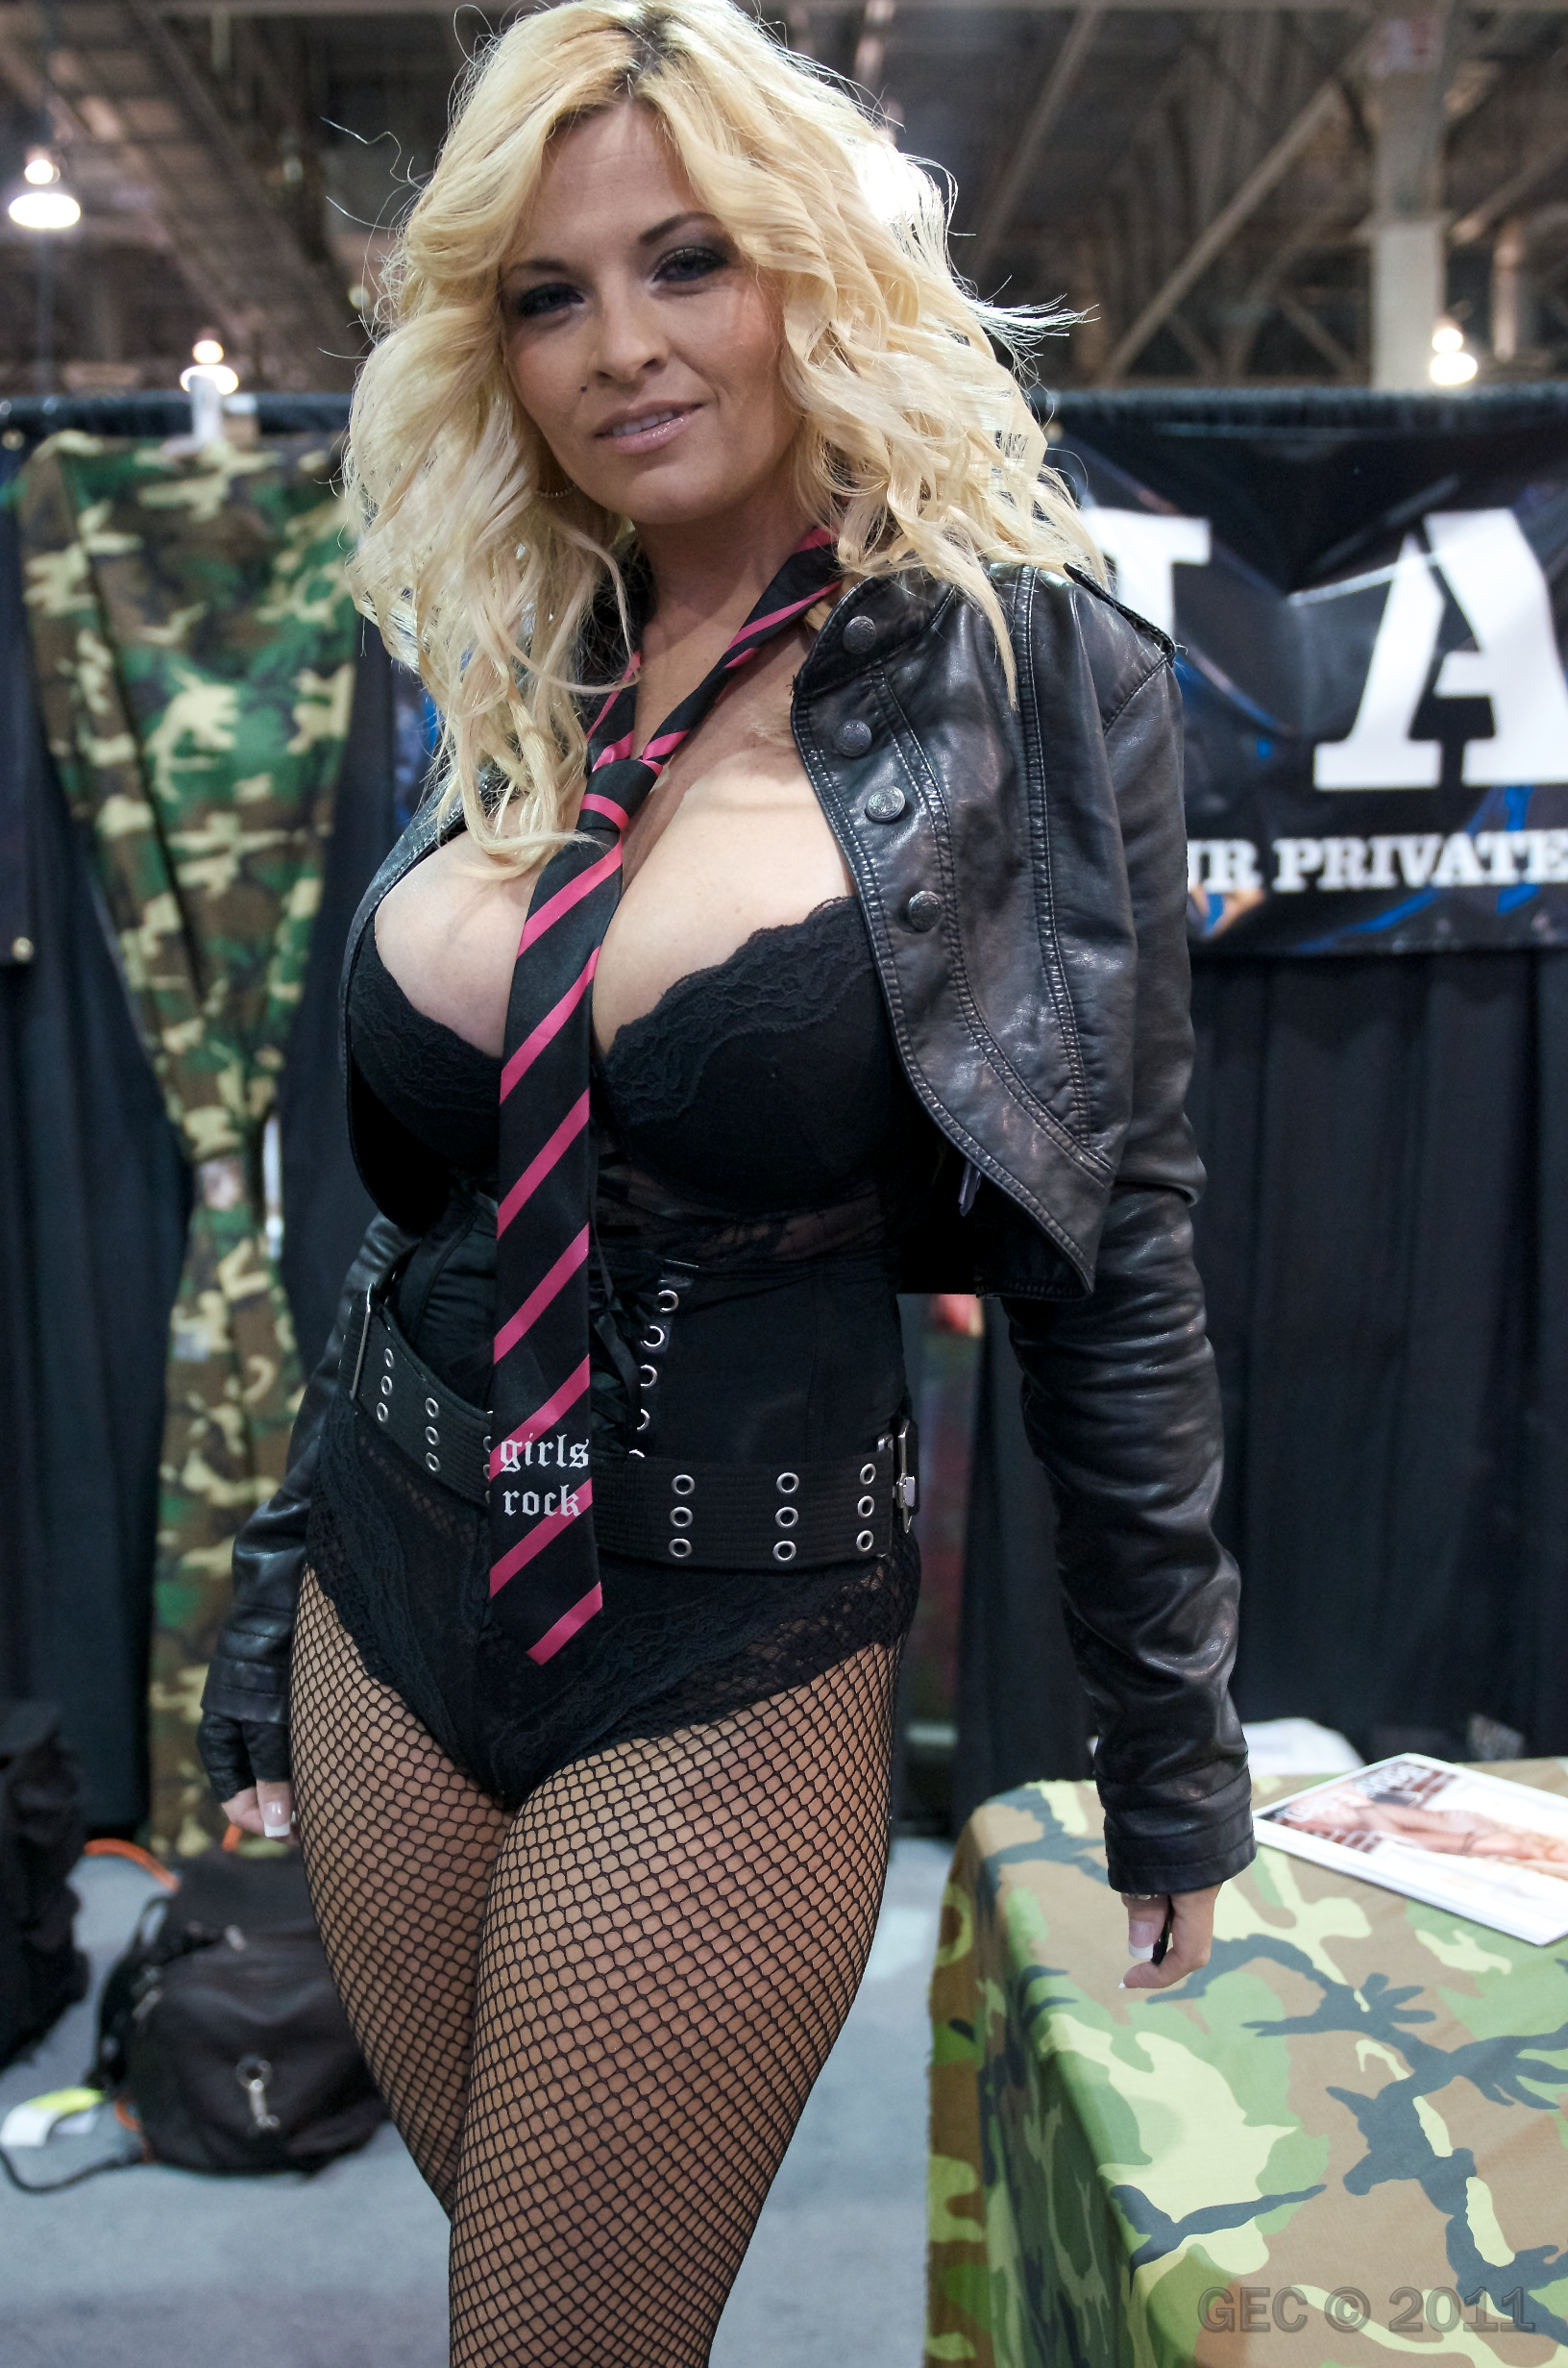 Filebobbi Eden Avn 2011 1 Jpg